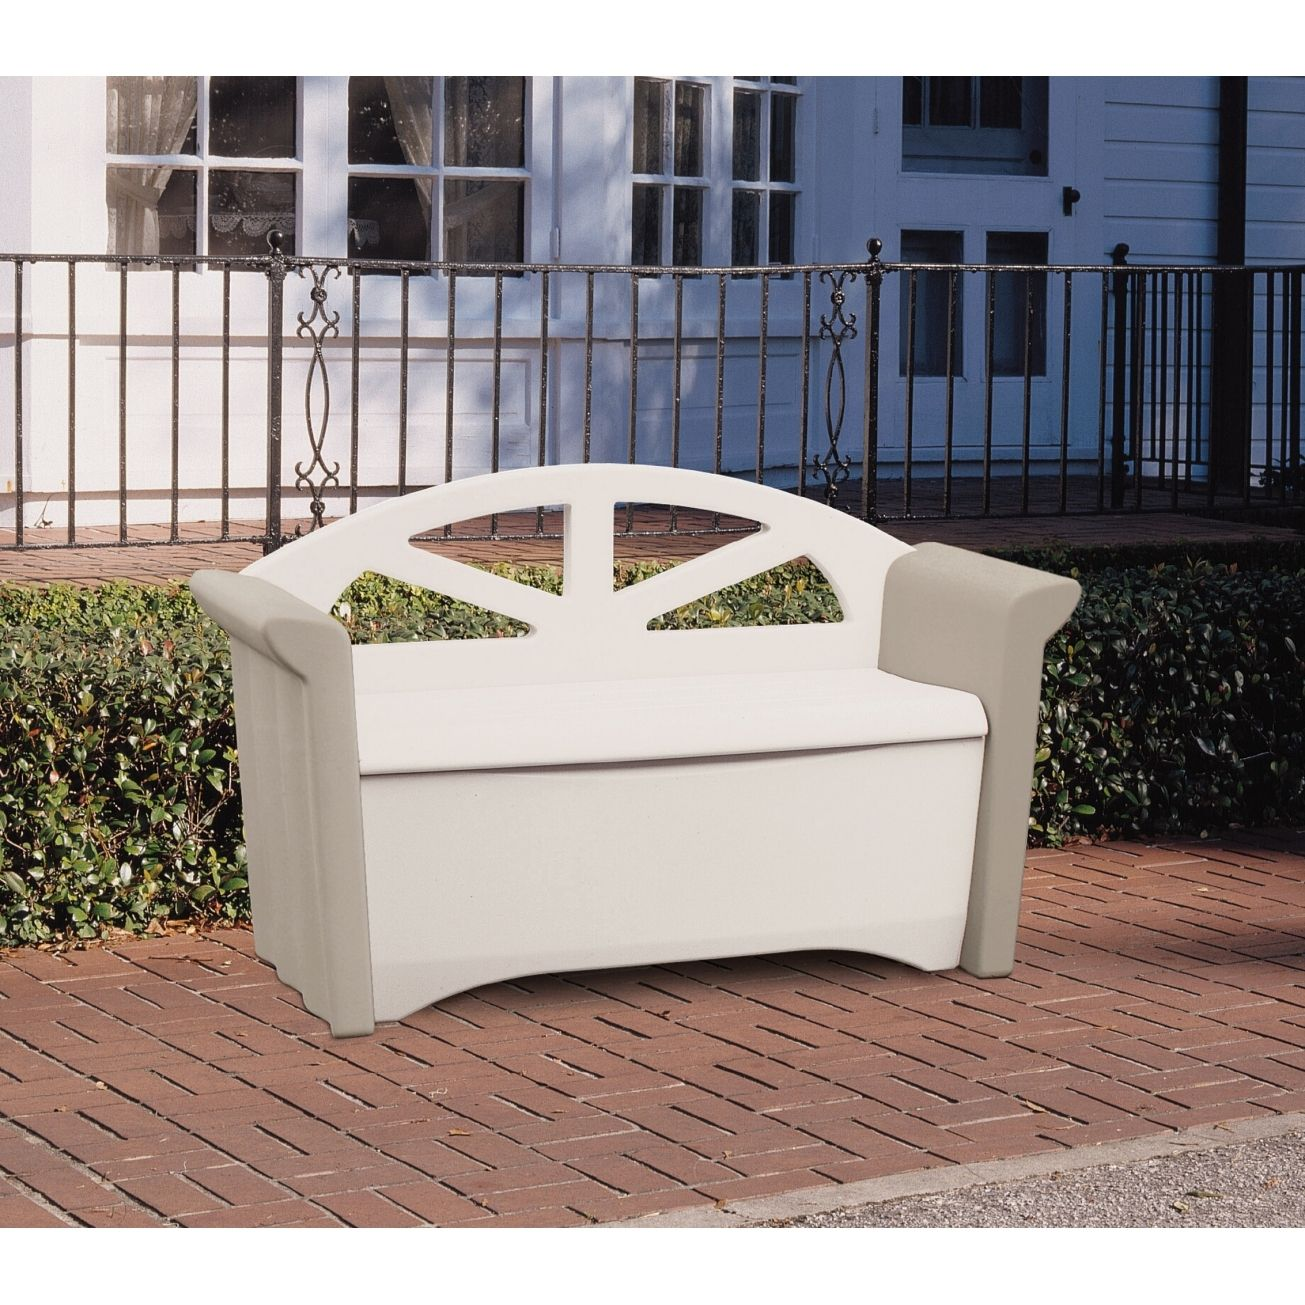 Rubbermaid Patio Table